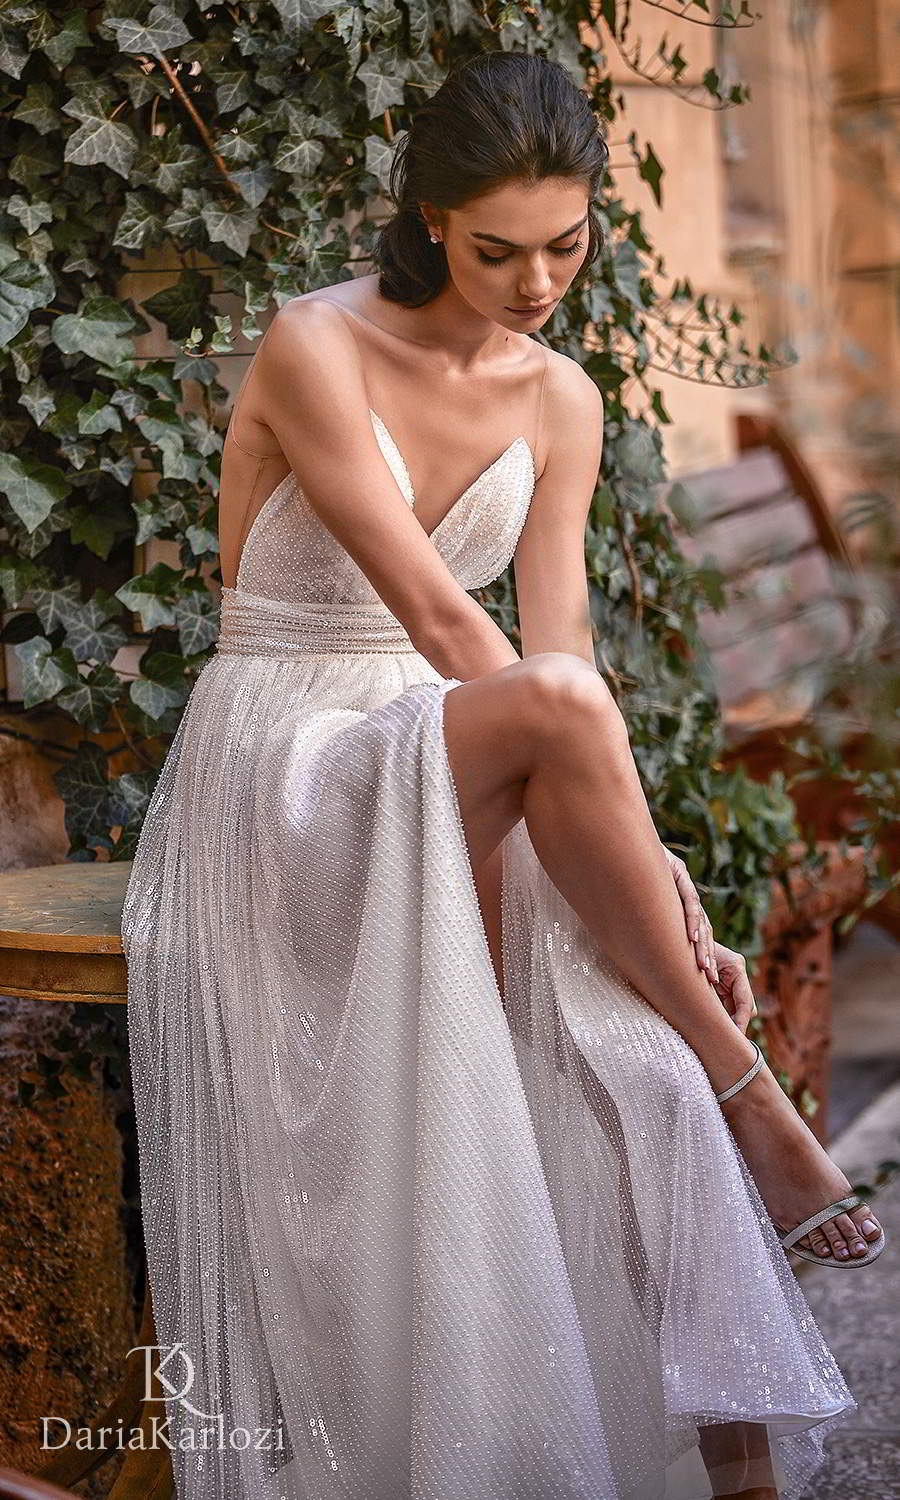 daria karlozi 2021 graceful dream bridal sleeveless illusion straps plunging sweetheart neckline fully embellished a line wedding dress (towards the love) zv